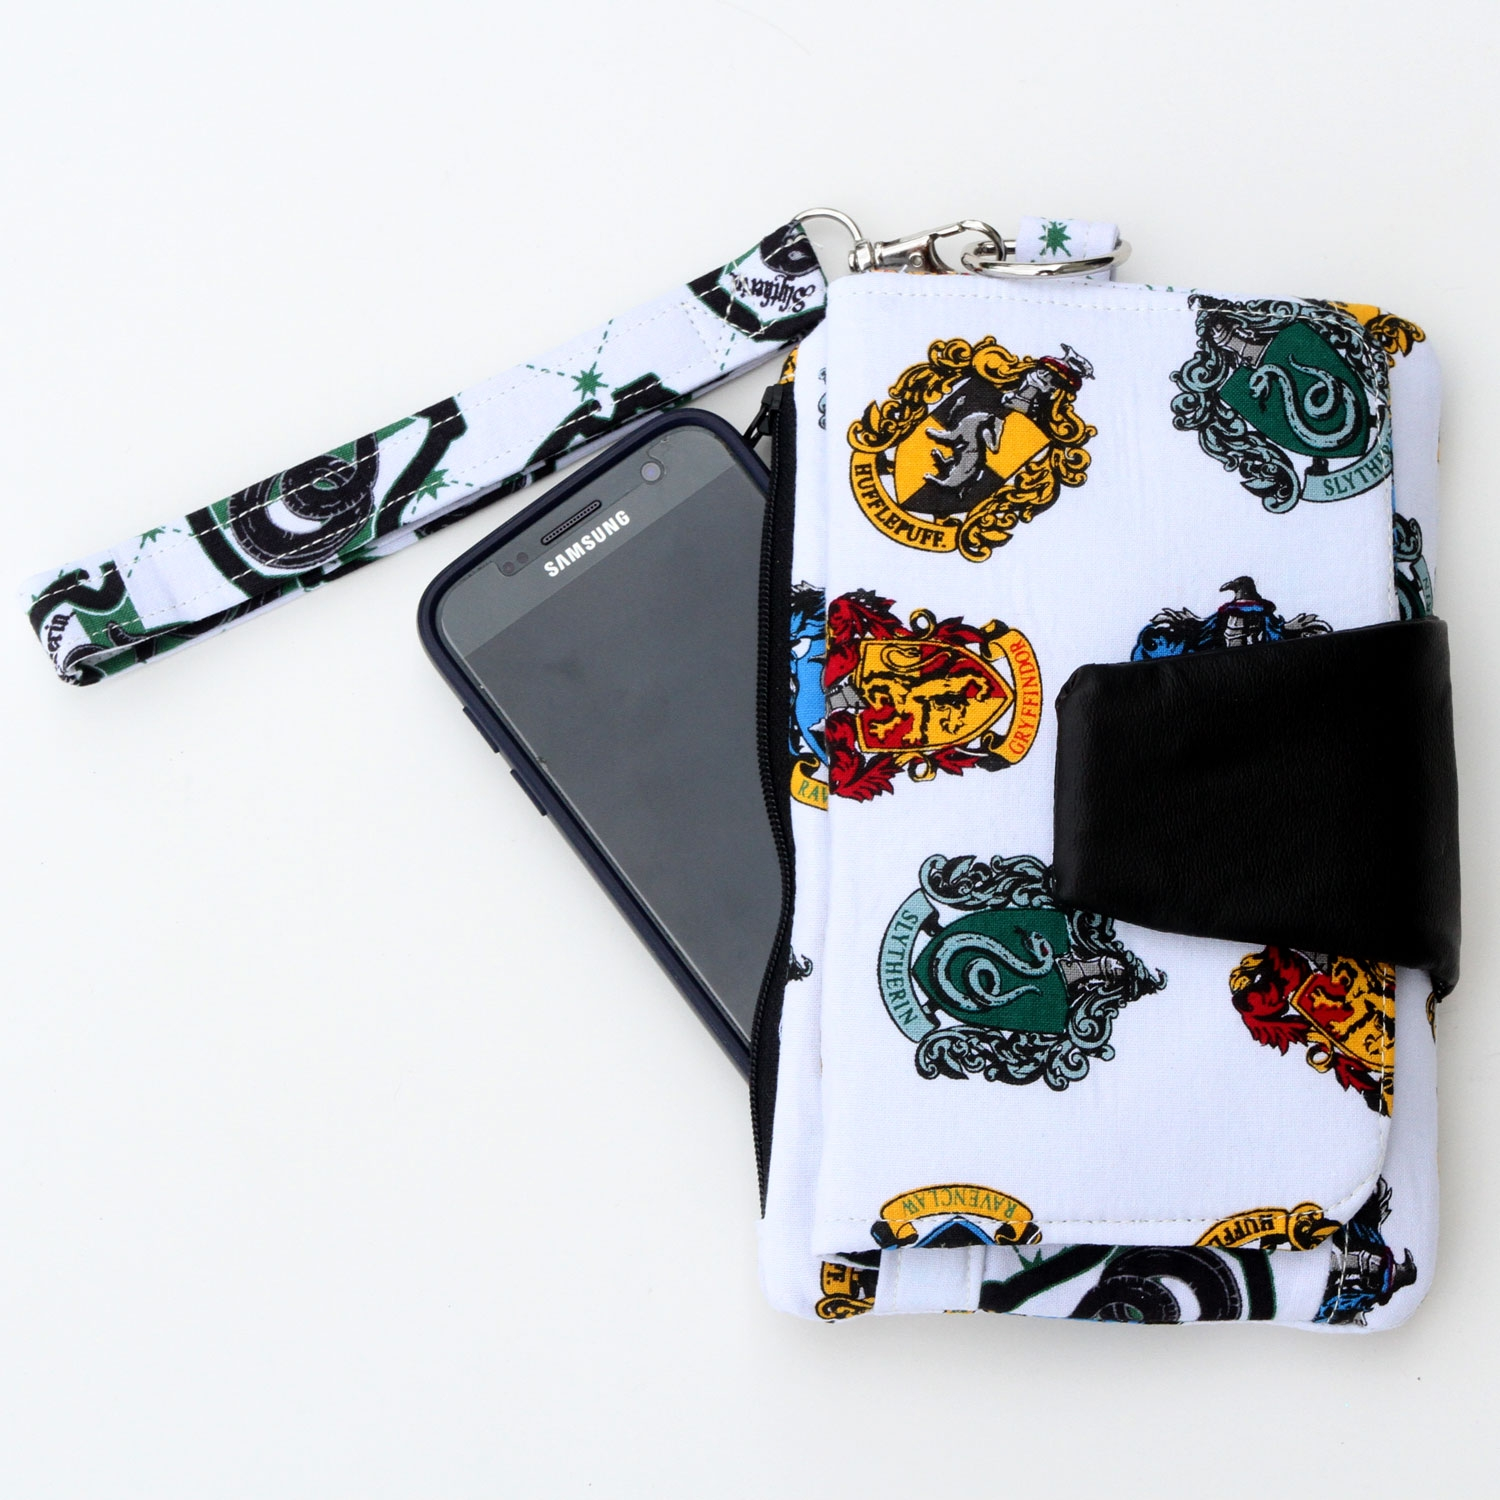 Wallet Clutch Purse with Slytherin Fabric - For all the Slytherin fans, this clutch is perfect. It has an outer zipper pocket and credit card slots inside.(Other options available as well)